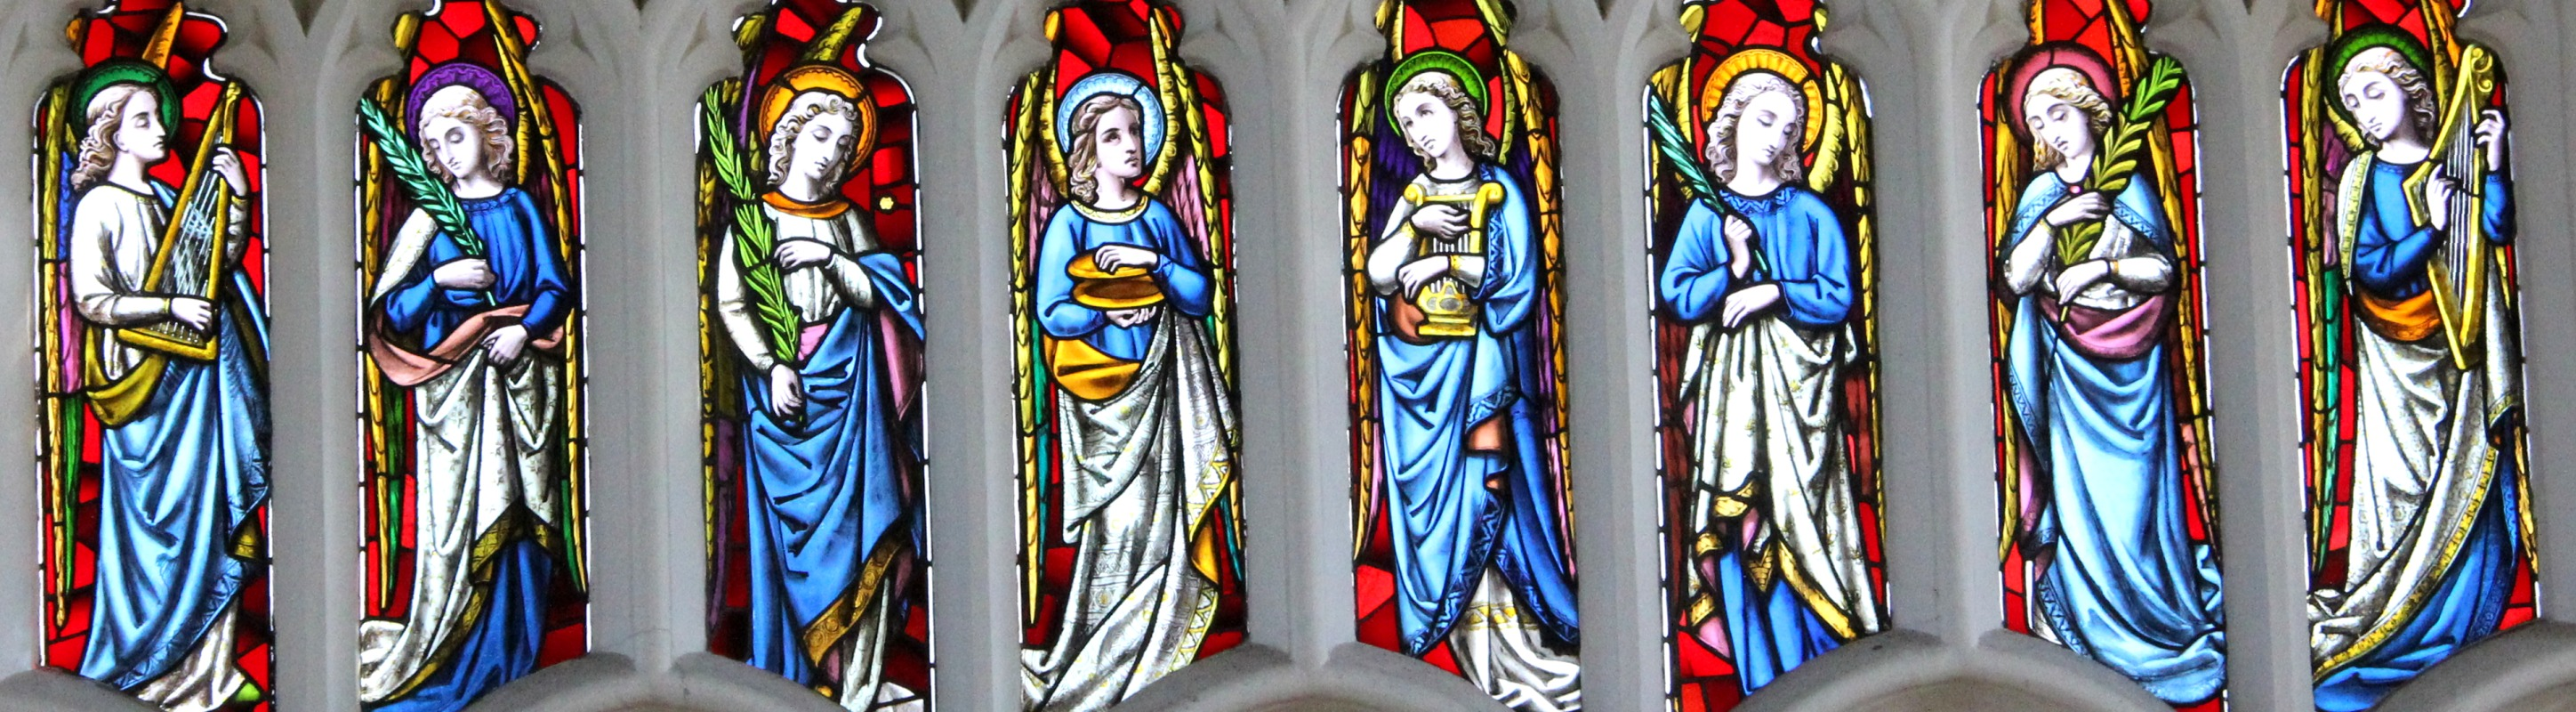 East-window-top-angels-8639-80